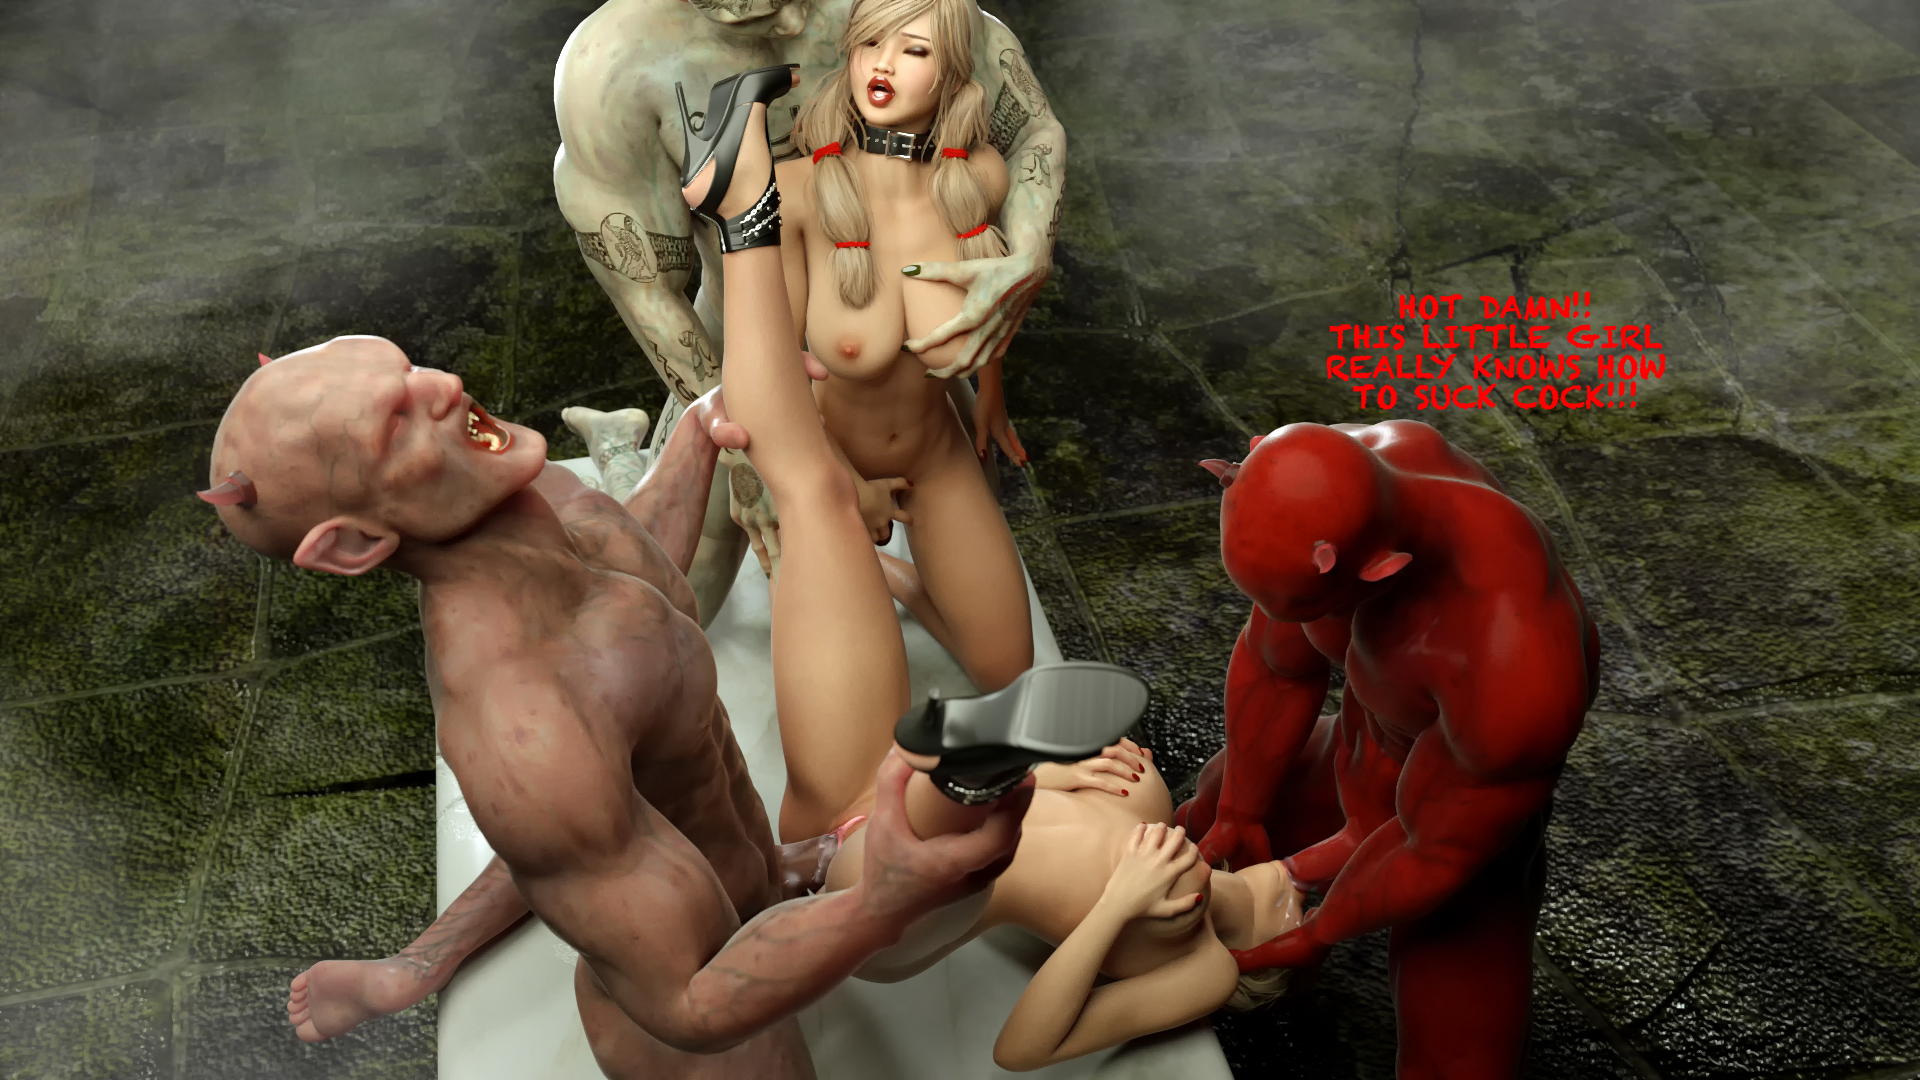 Hentai women slaves fucked by demons xxx videos